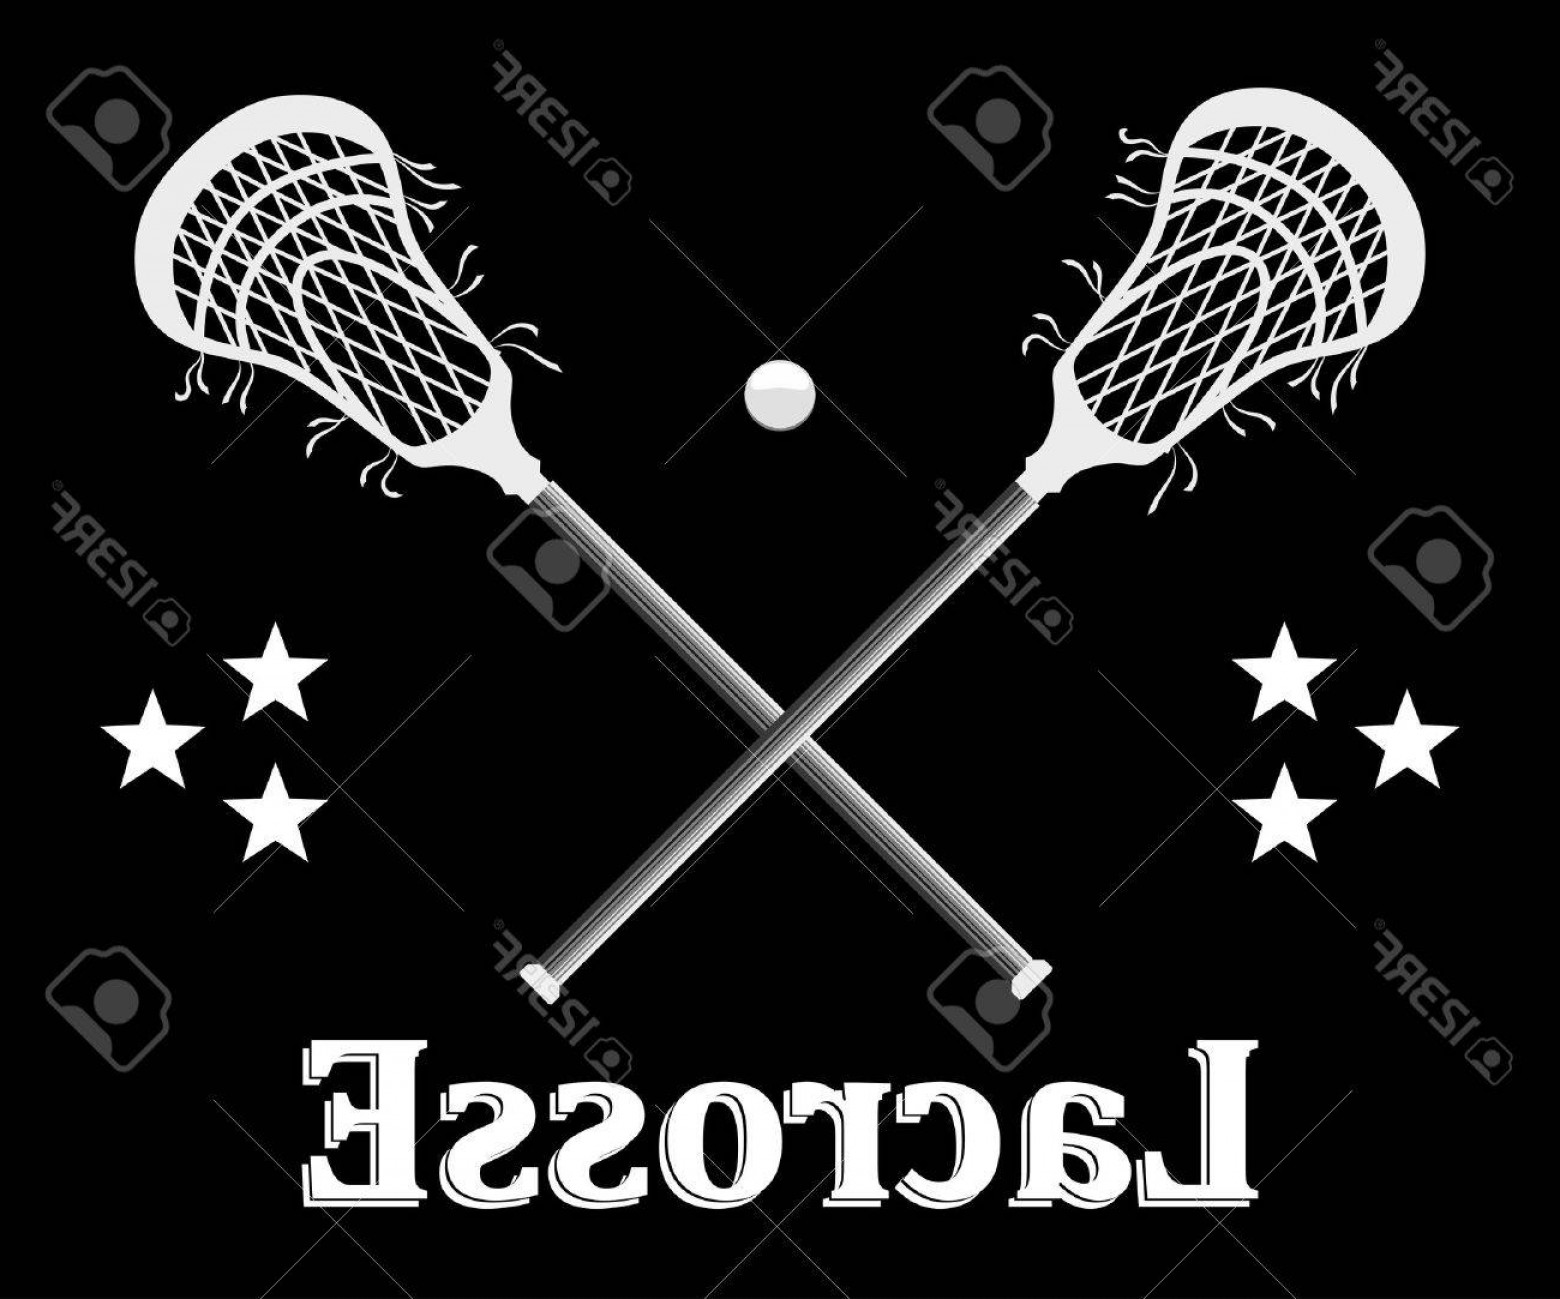 Lacrosse Stick Vector: Photostock Vector Crossed Lacrosse Stick And Ball On A Black Background